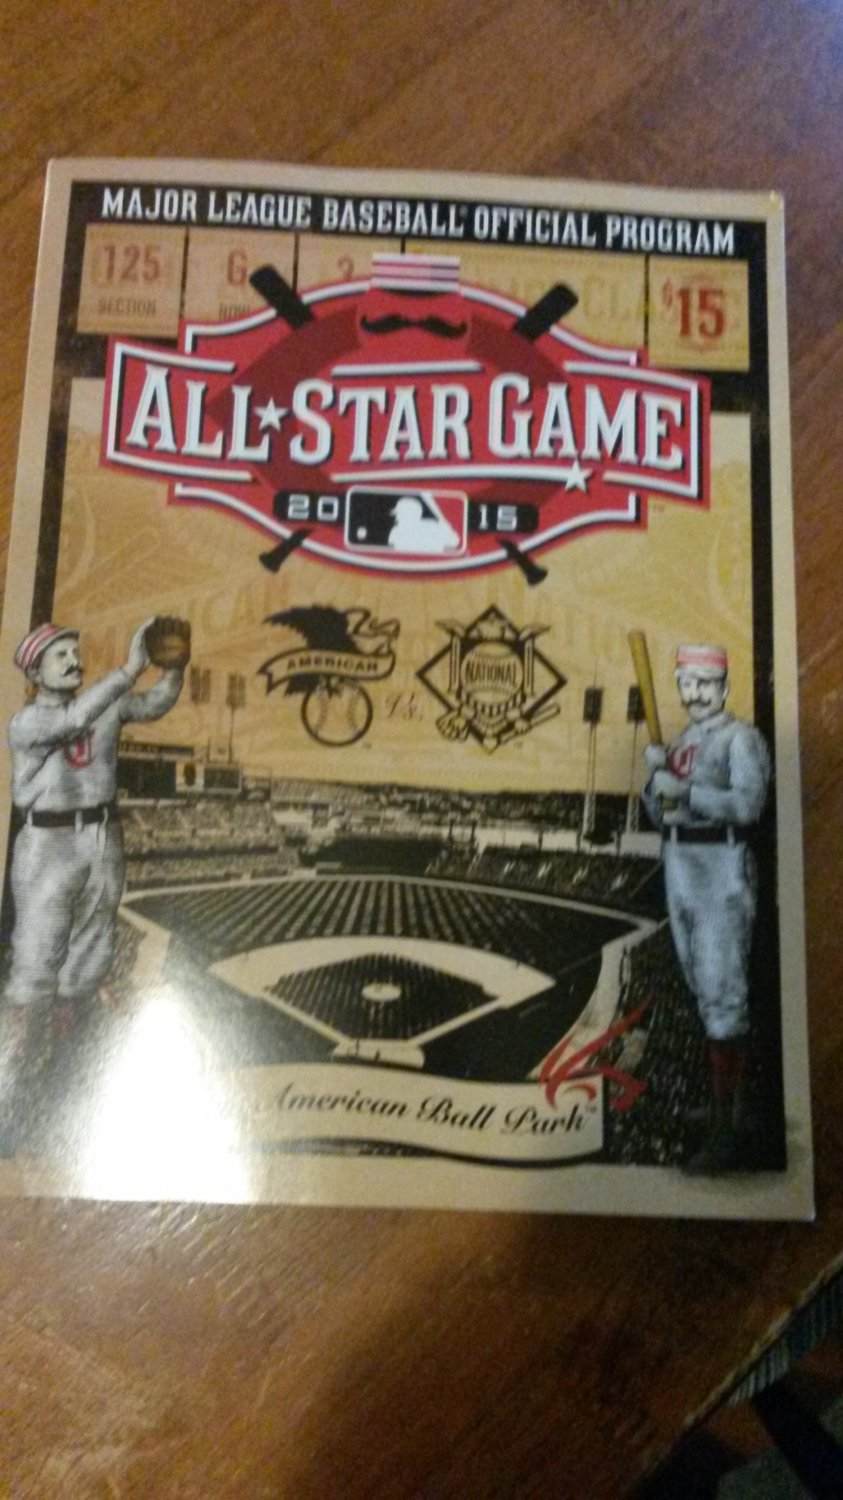 2015 MLB All Star Game program